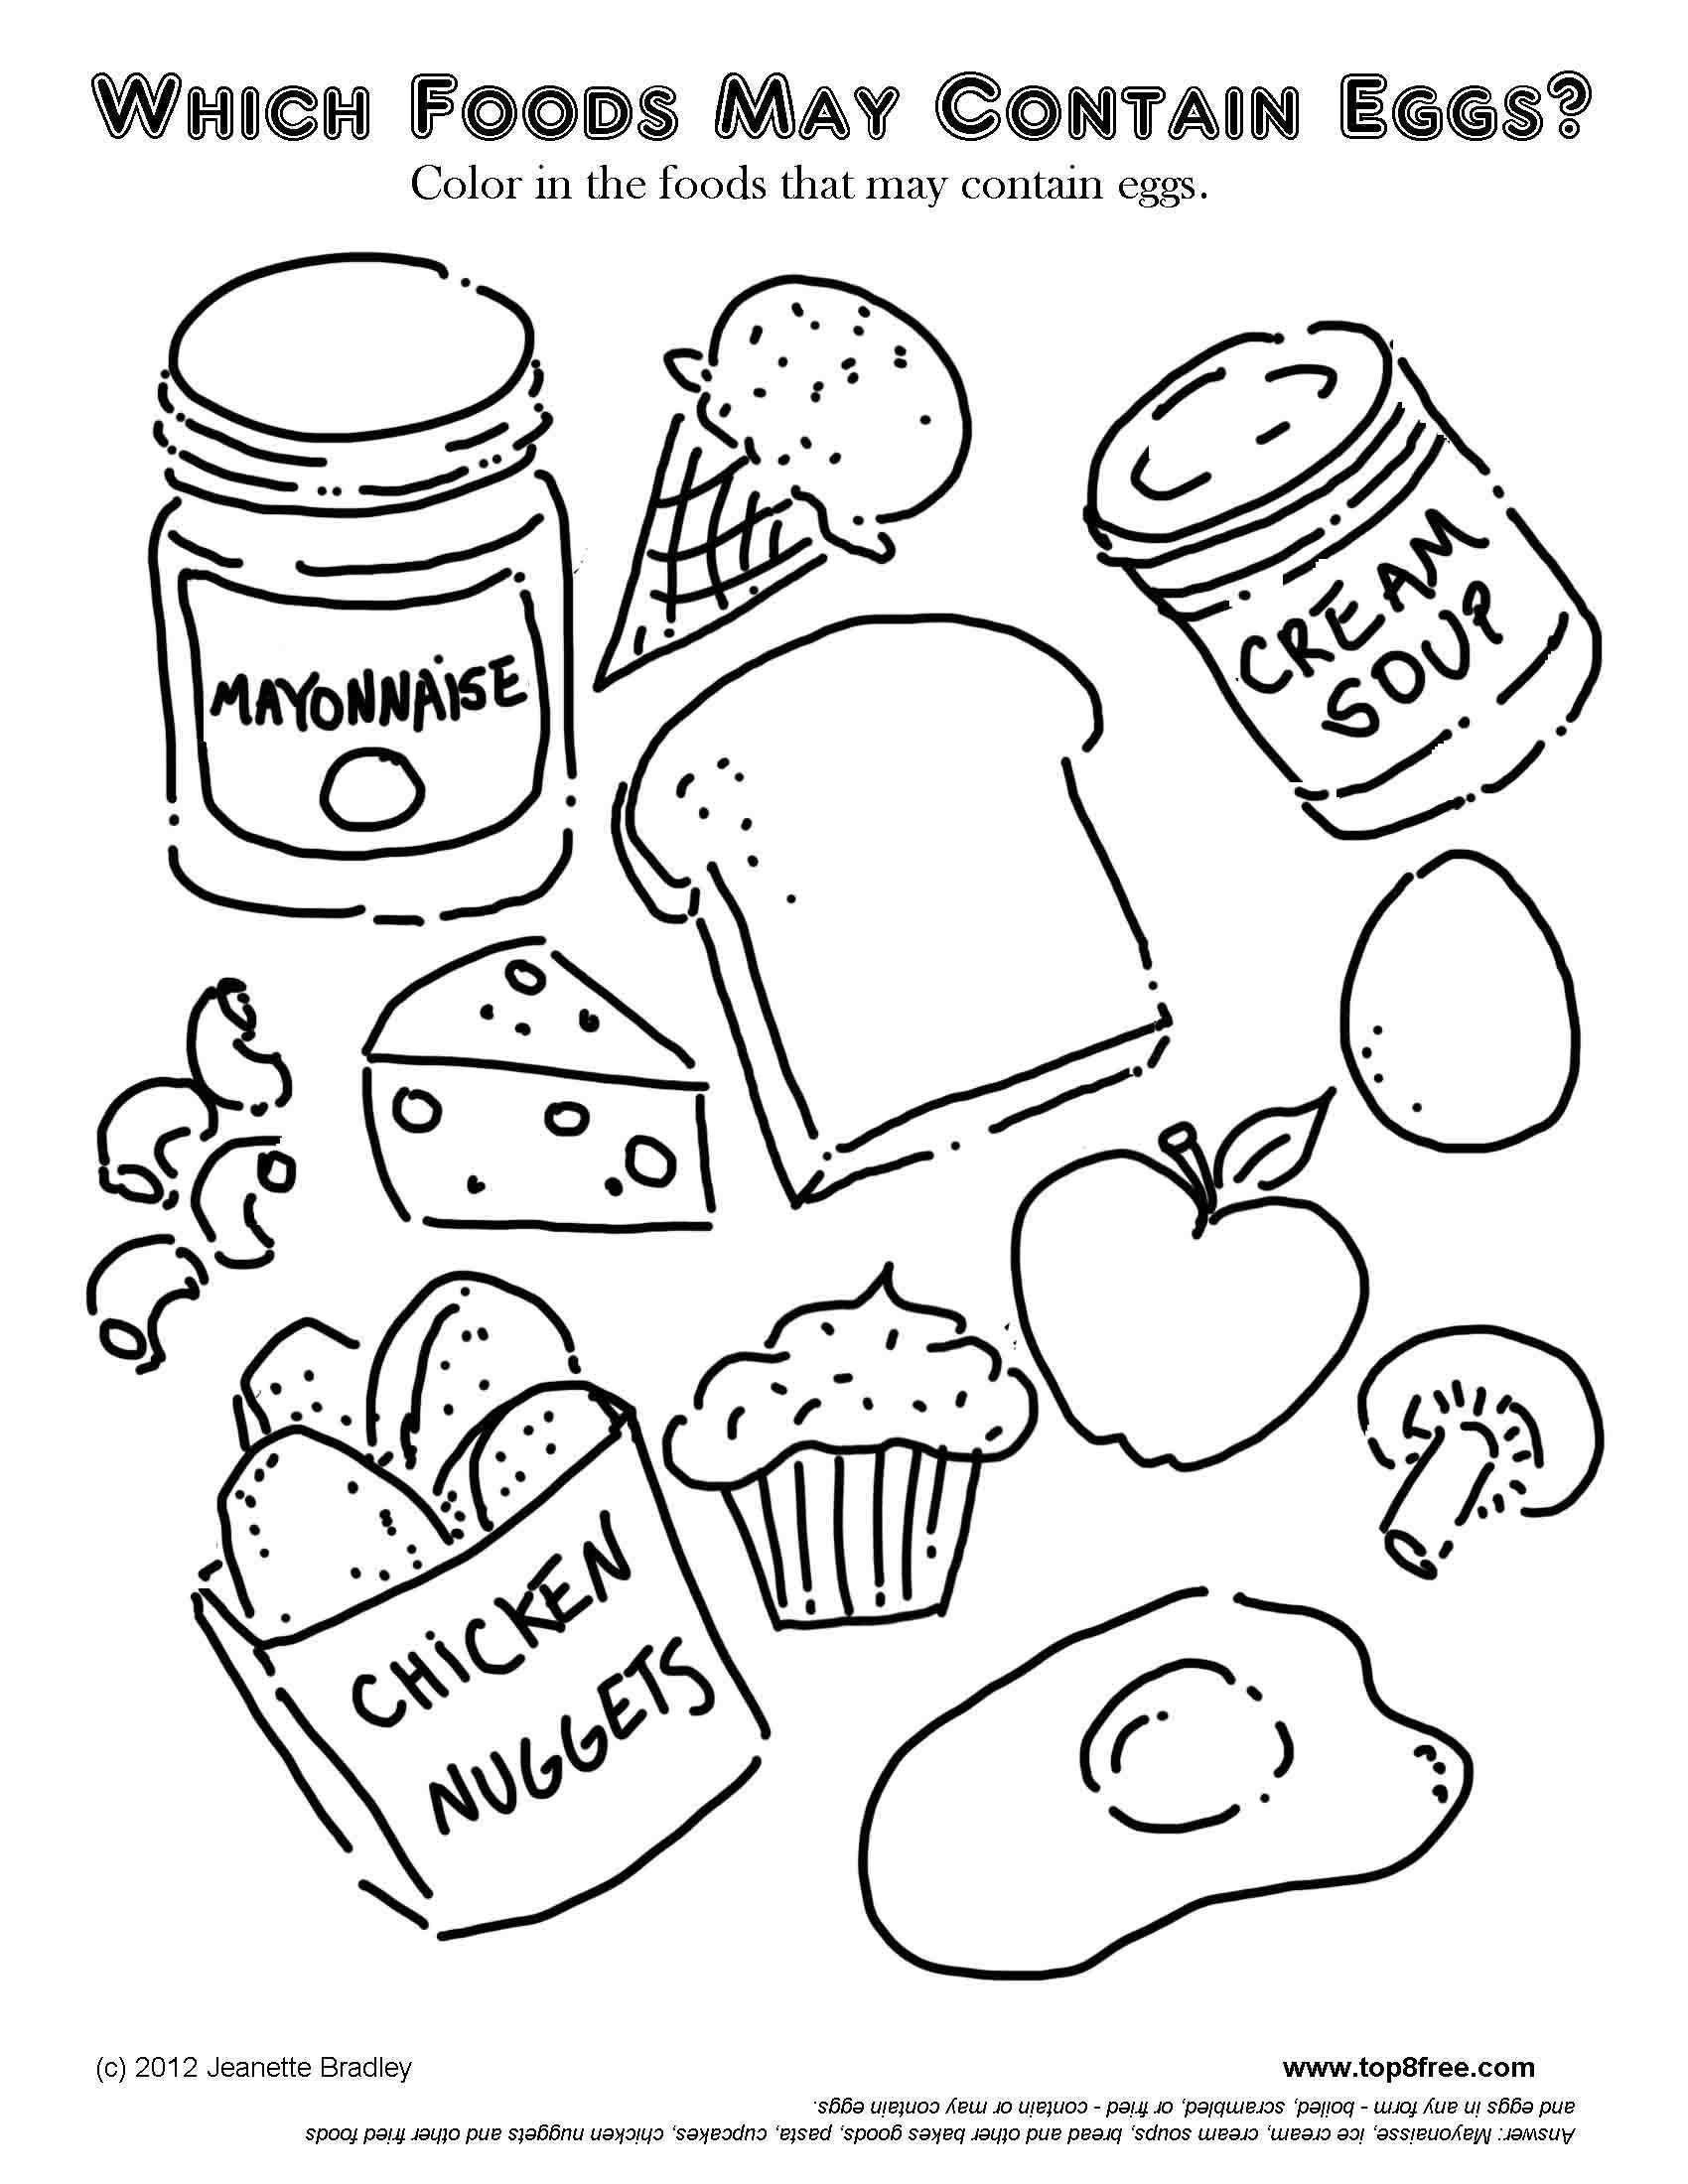 22 Awesome Image Of Food Coloring Pages Davemelillo Com Food Coloring Pages Free Kids Coloring Pages Neon Food Coloring